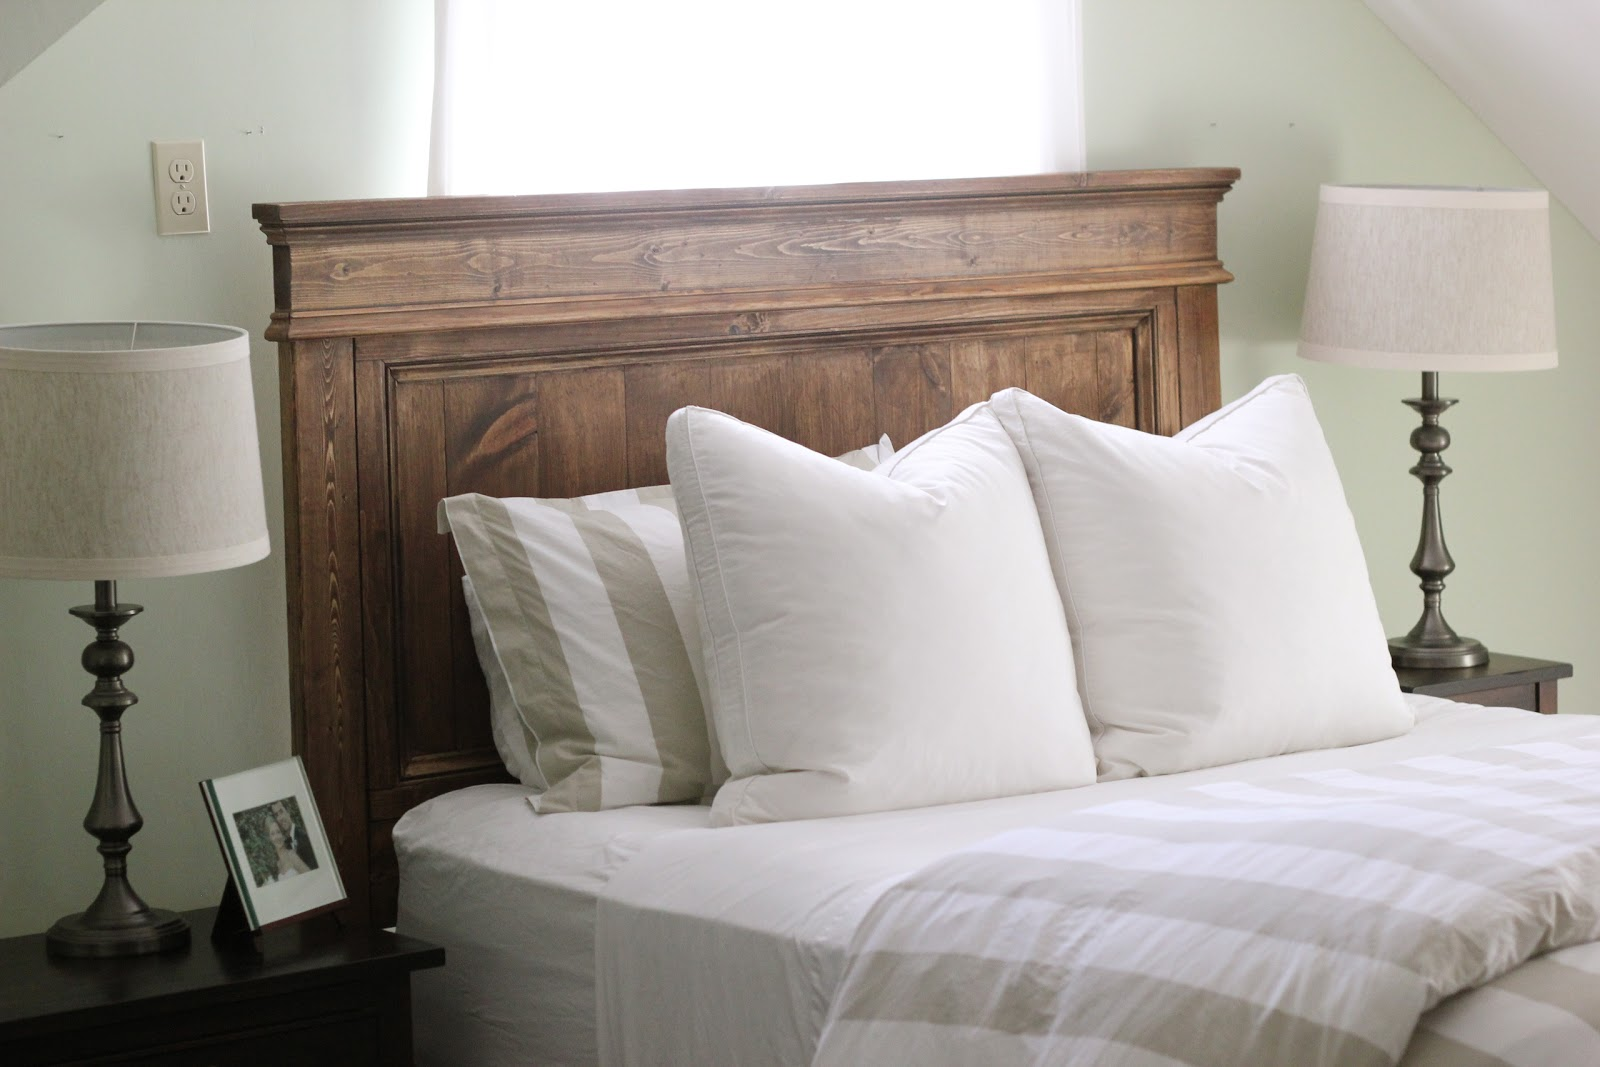 Wood Bed Headboards ~ Jenny steffens hobick we built a bed diy wooden headboard